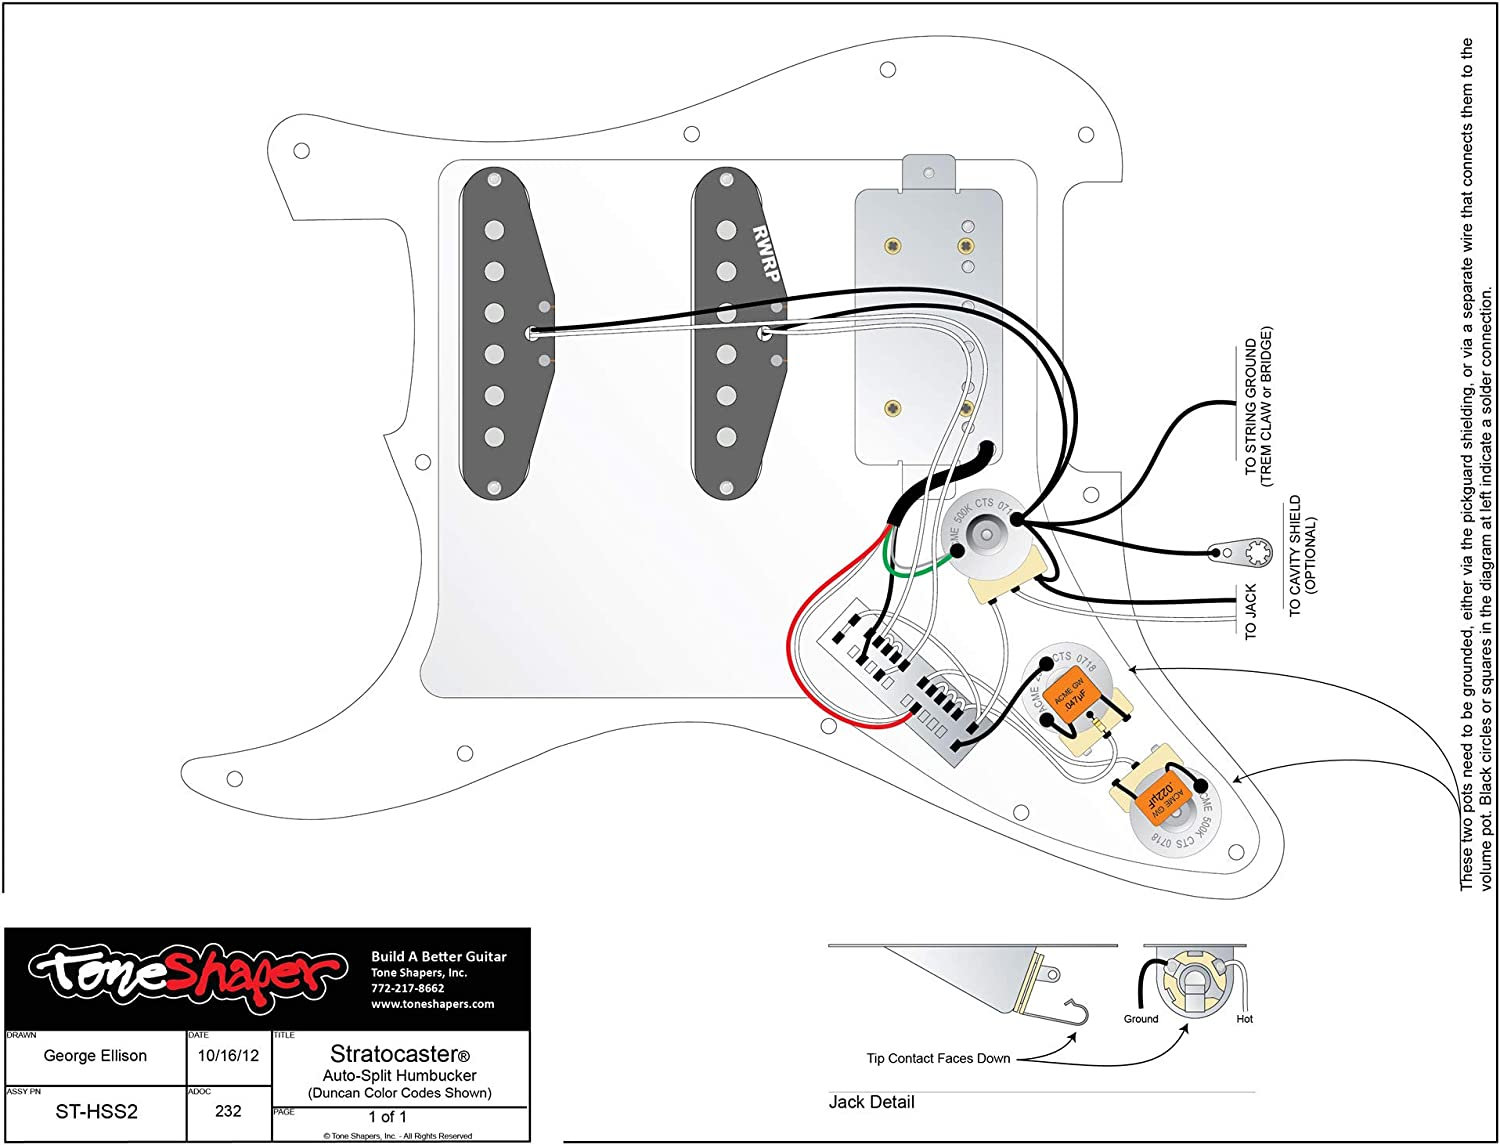 Fender Squier Strat Wiring Diagram